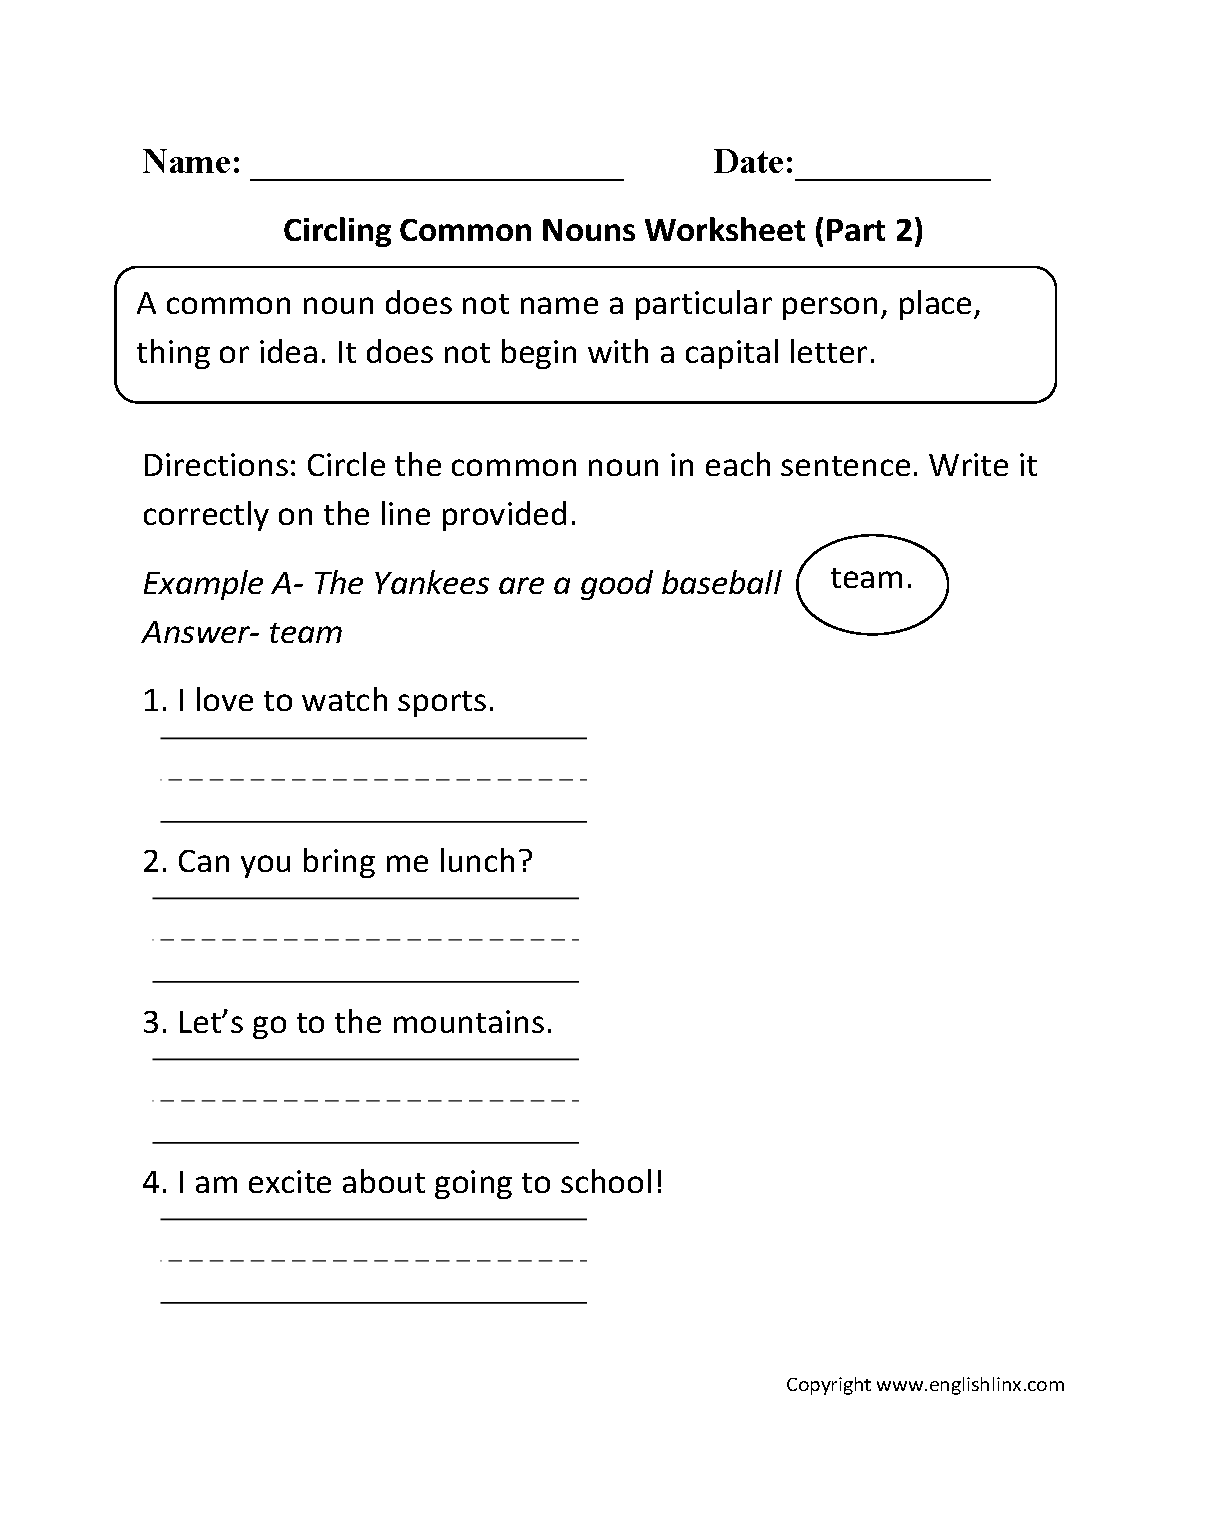 Pin by Mais Samhouri on Homeschoolin' English   Common nouns worksheet [ 1540 x 1207 Pixel ]